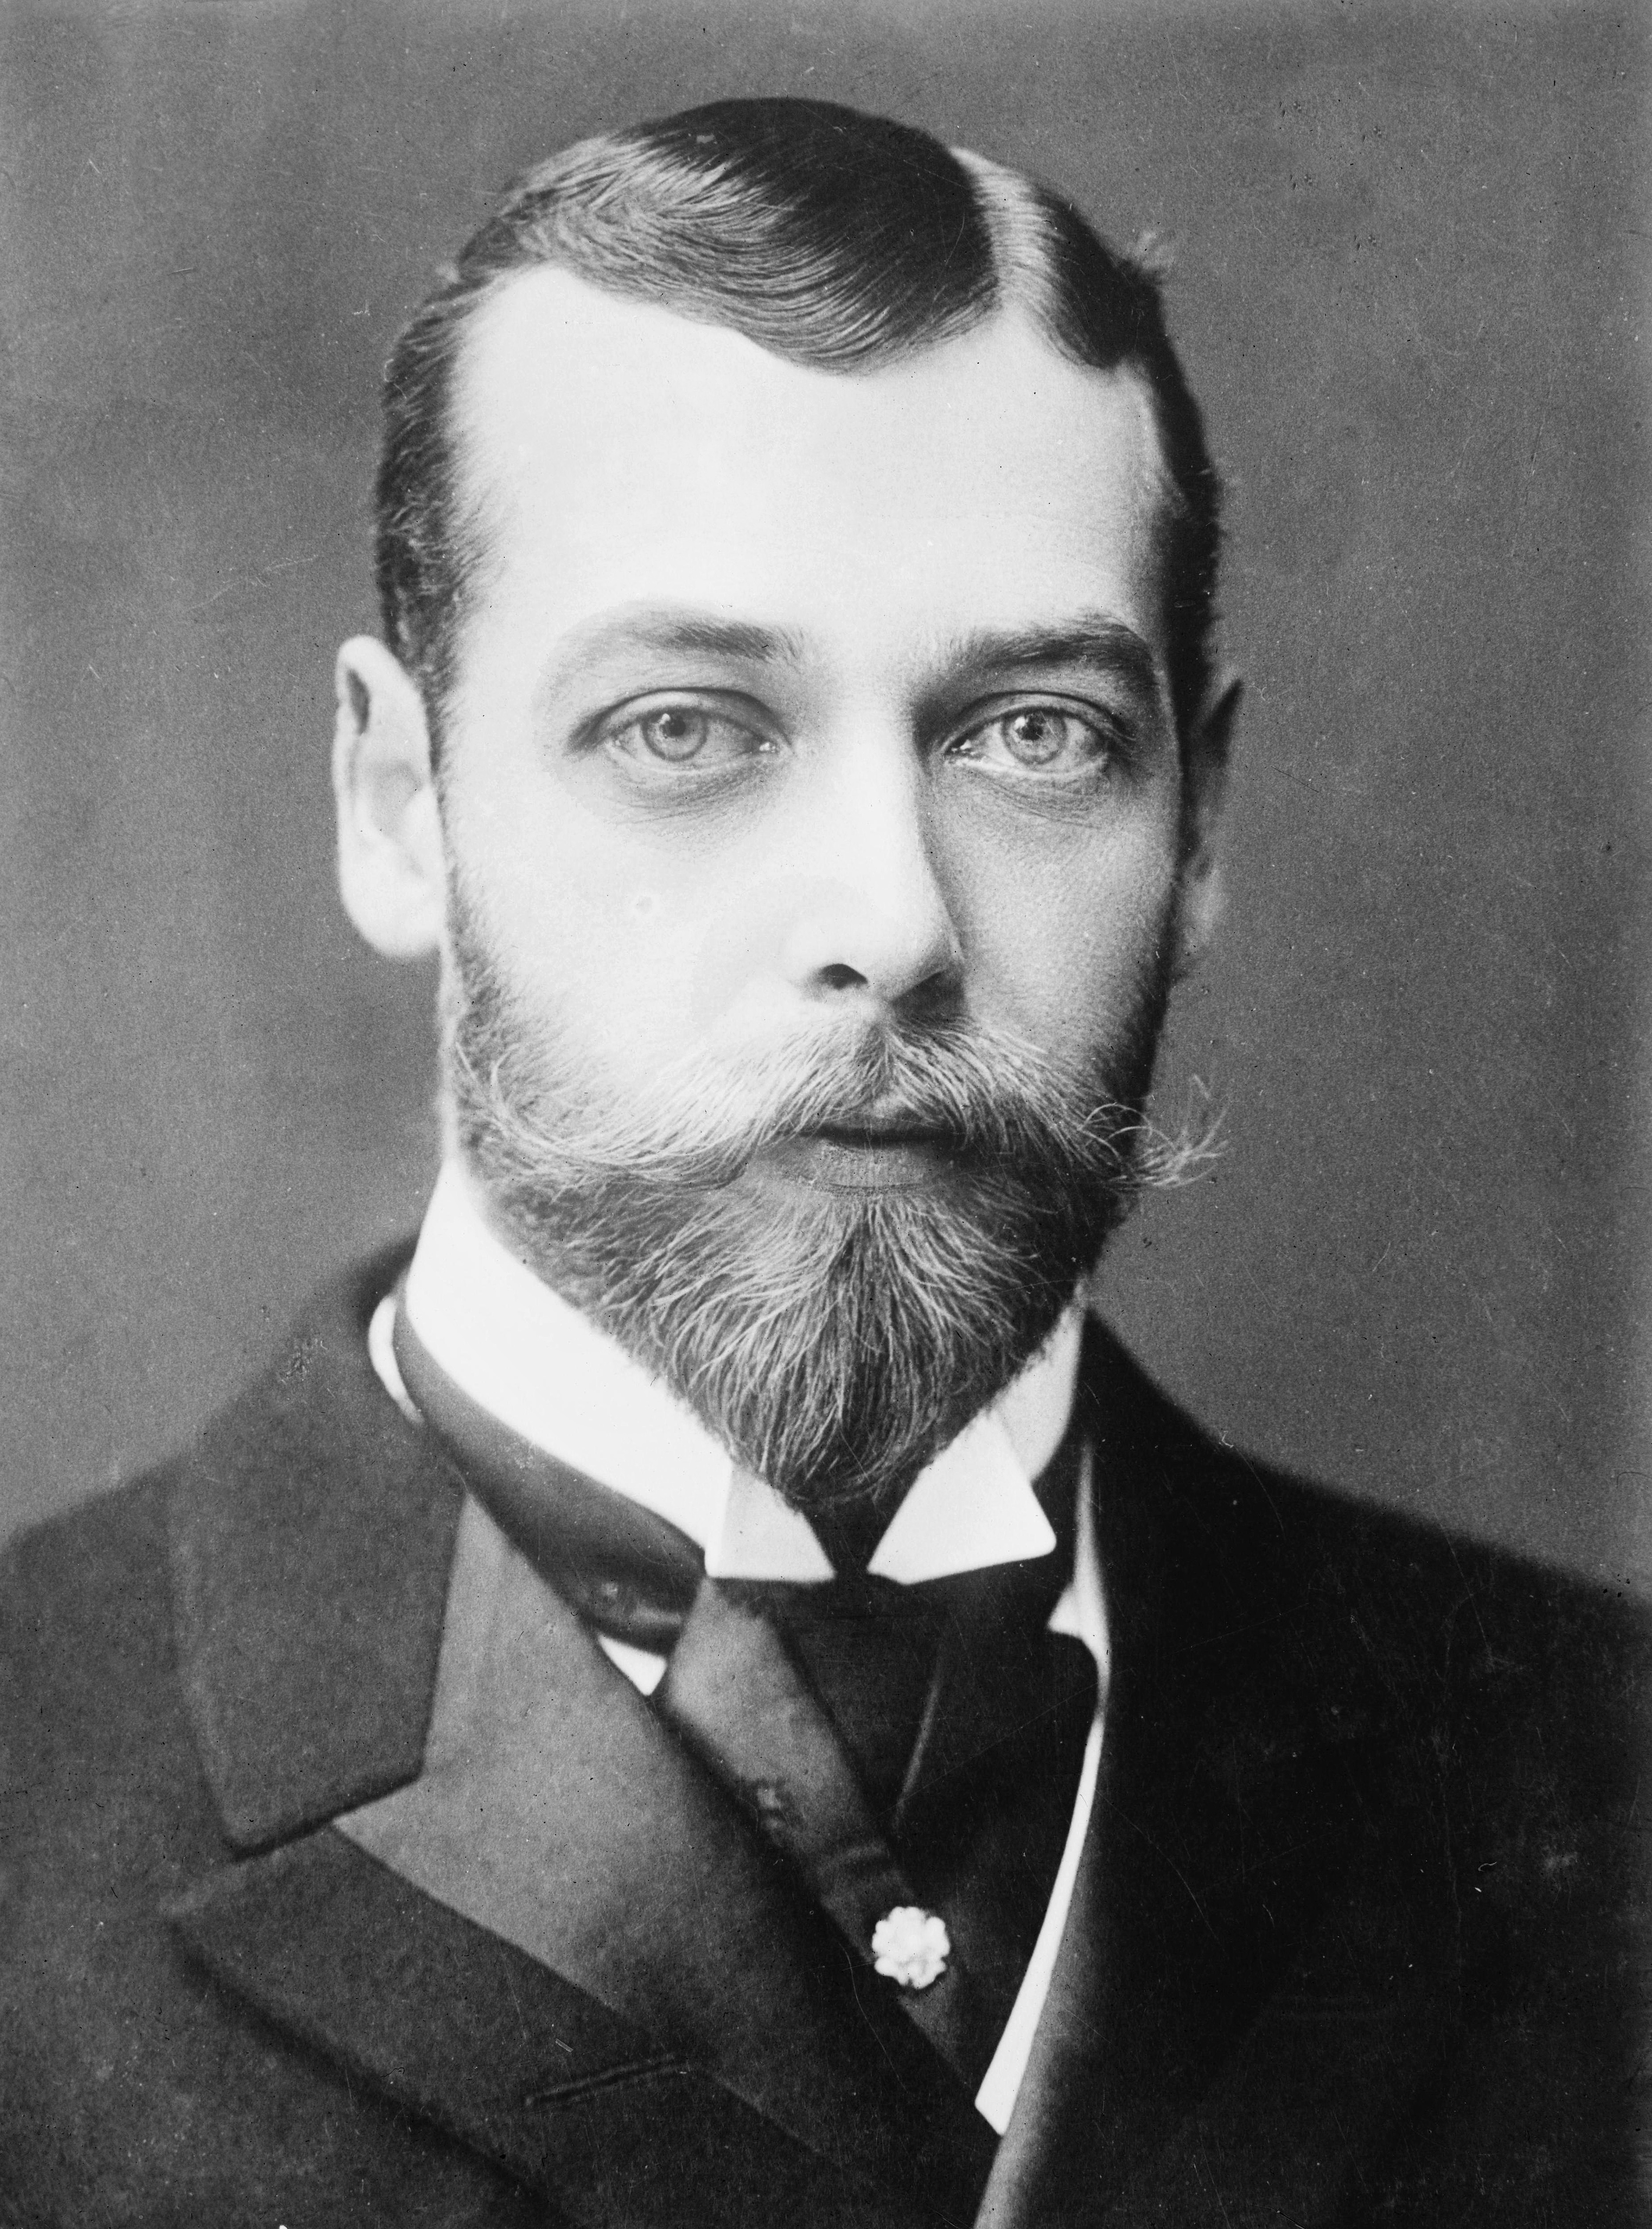 King George V. Photo taken 1893, apparently published in 1928.